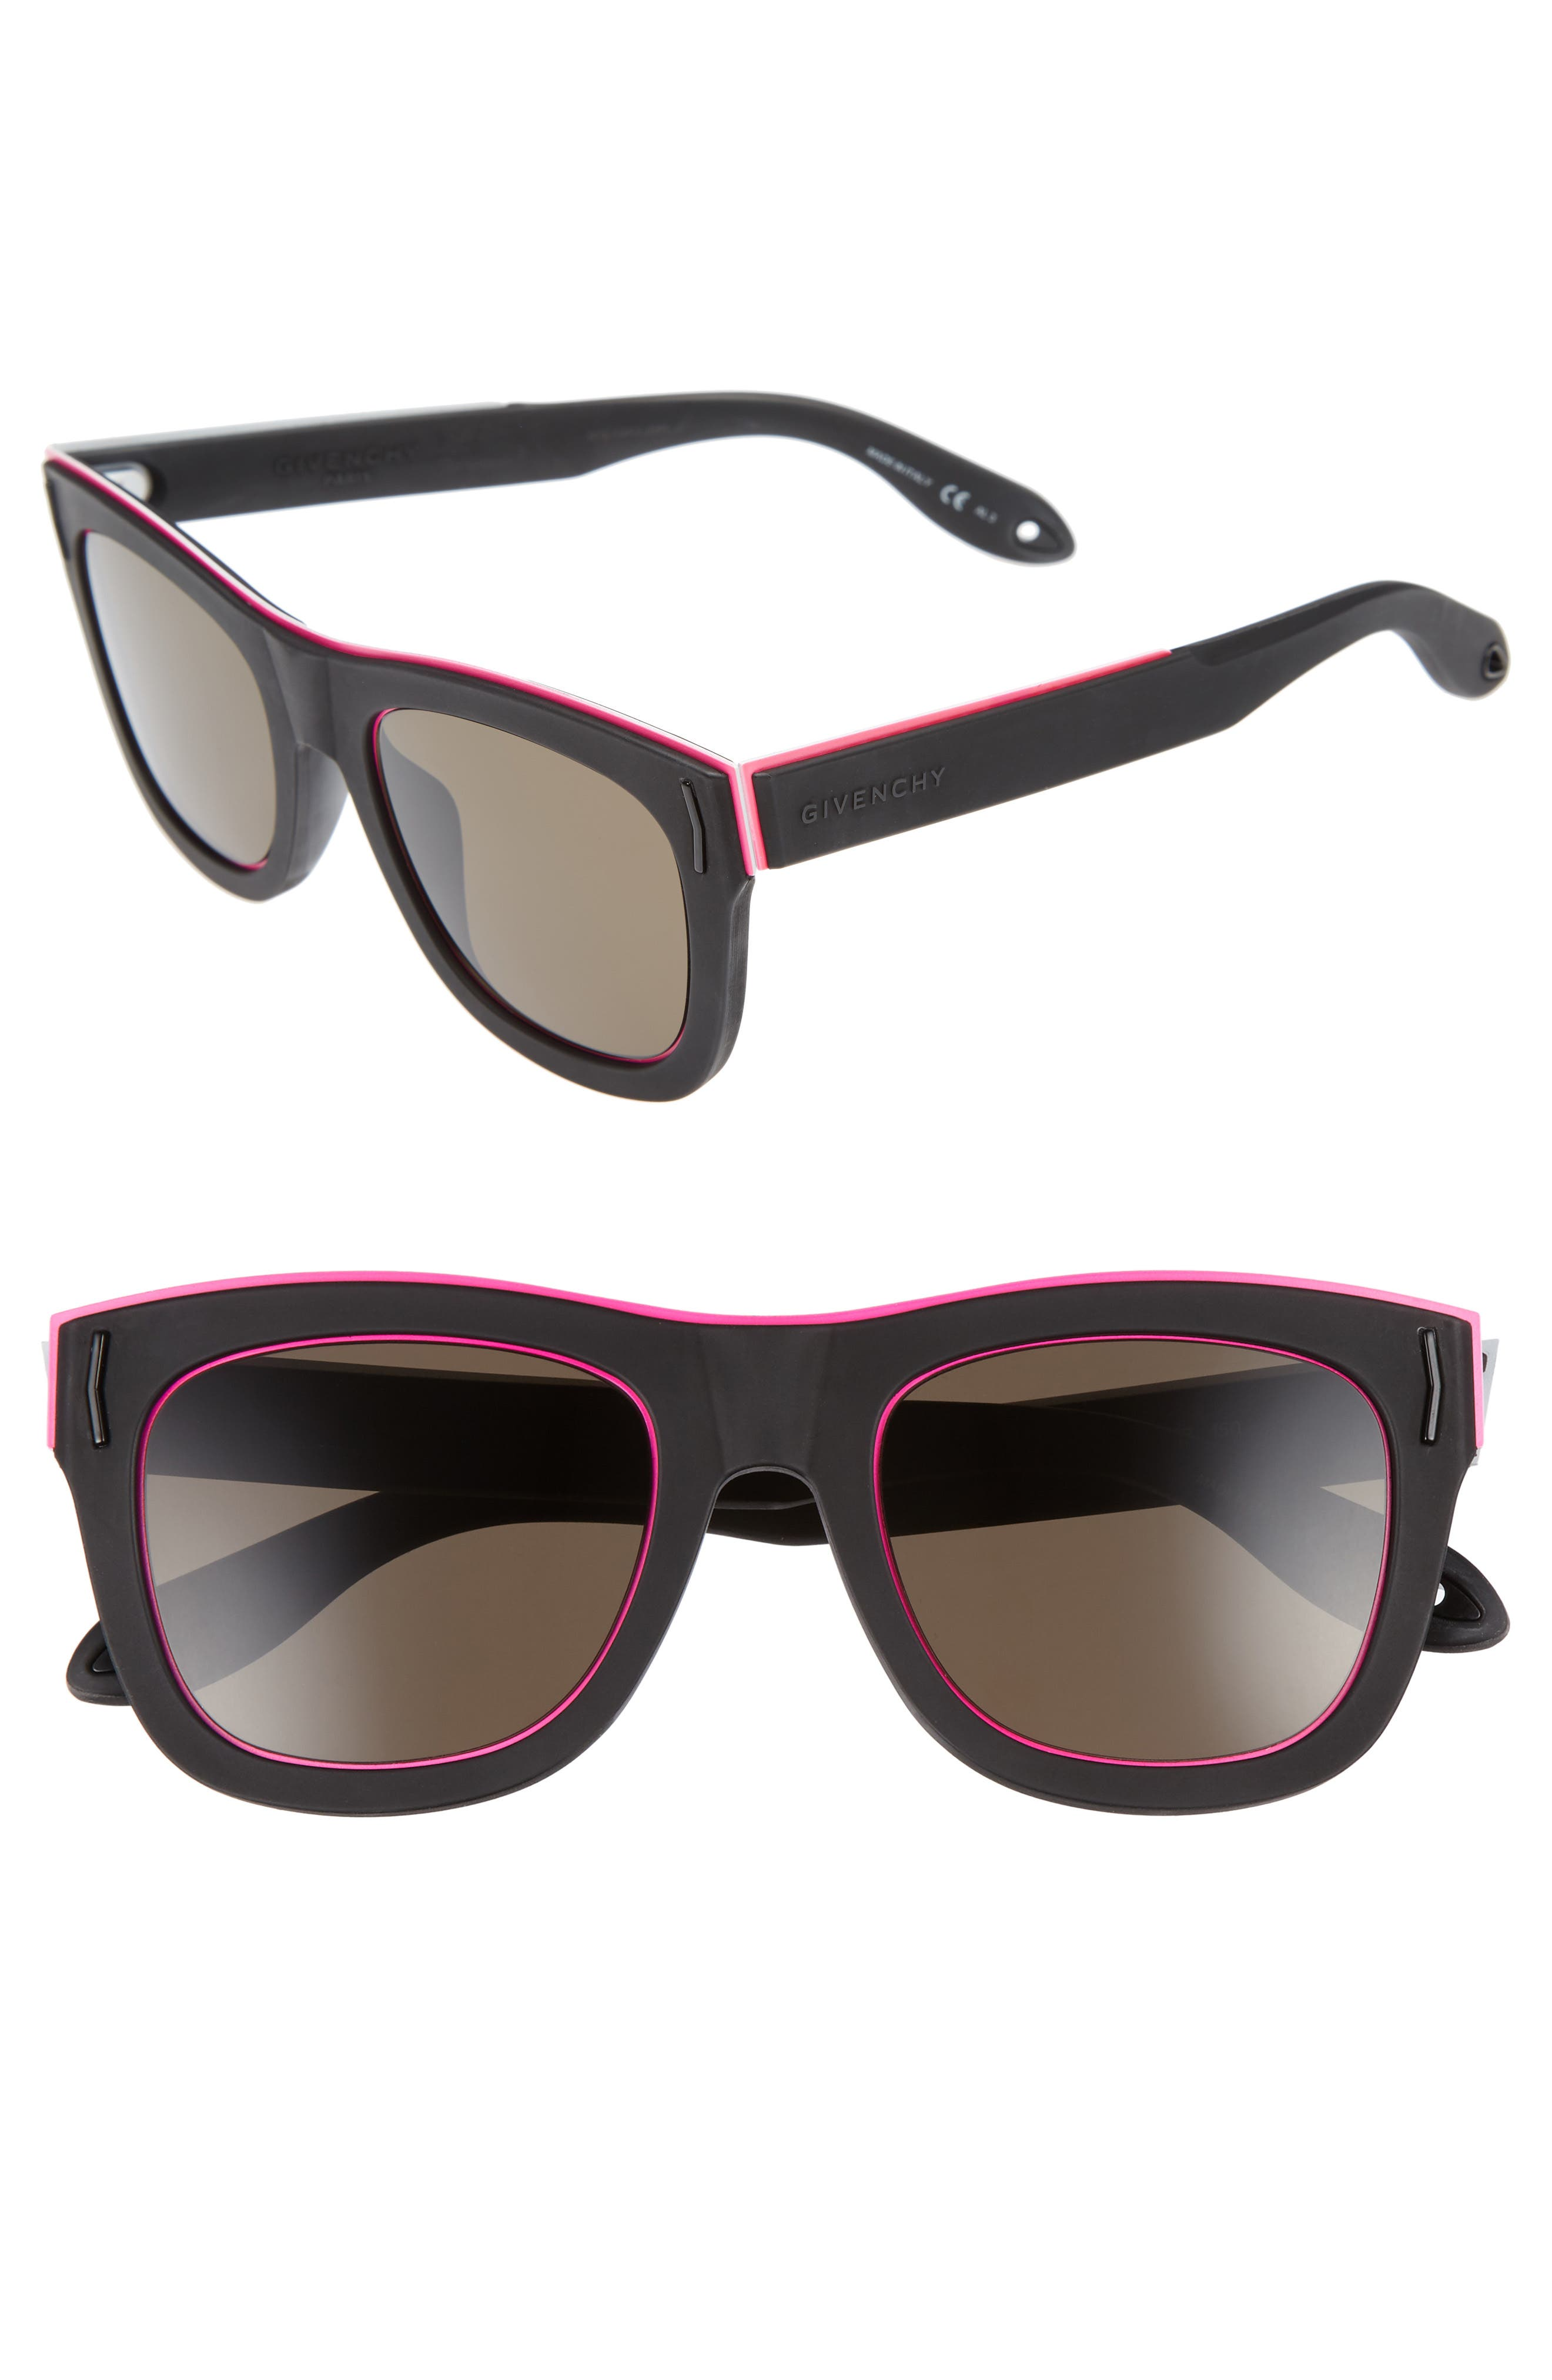 Givenchy 7016/S 52mm Sunglasses